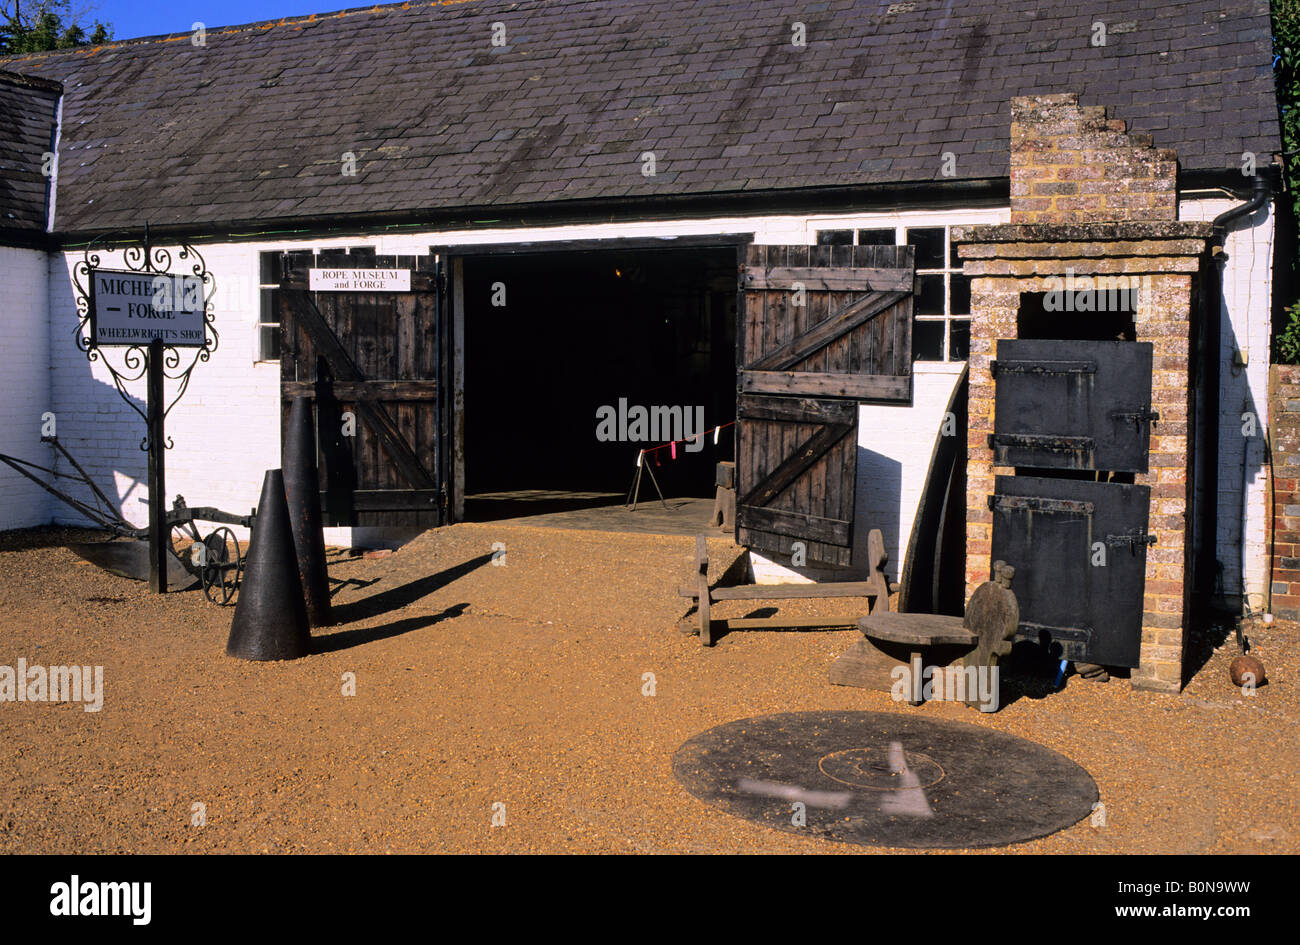 Rope museum and forge at Michelham Priory Sussex England UK - Stock Image